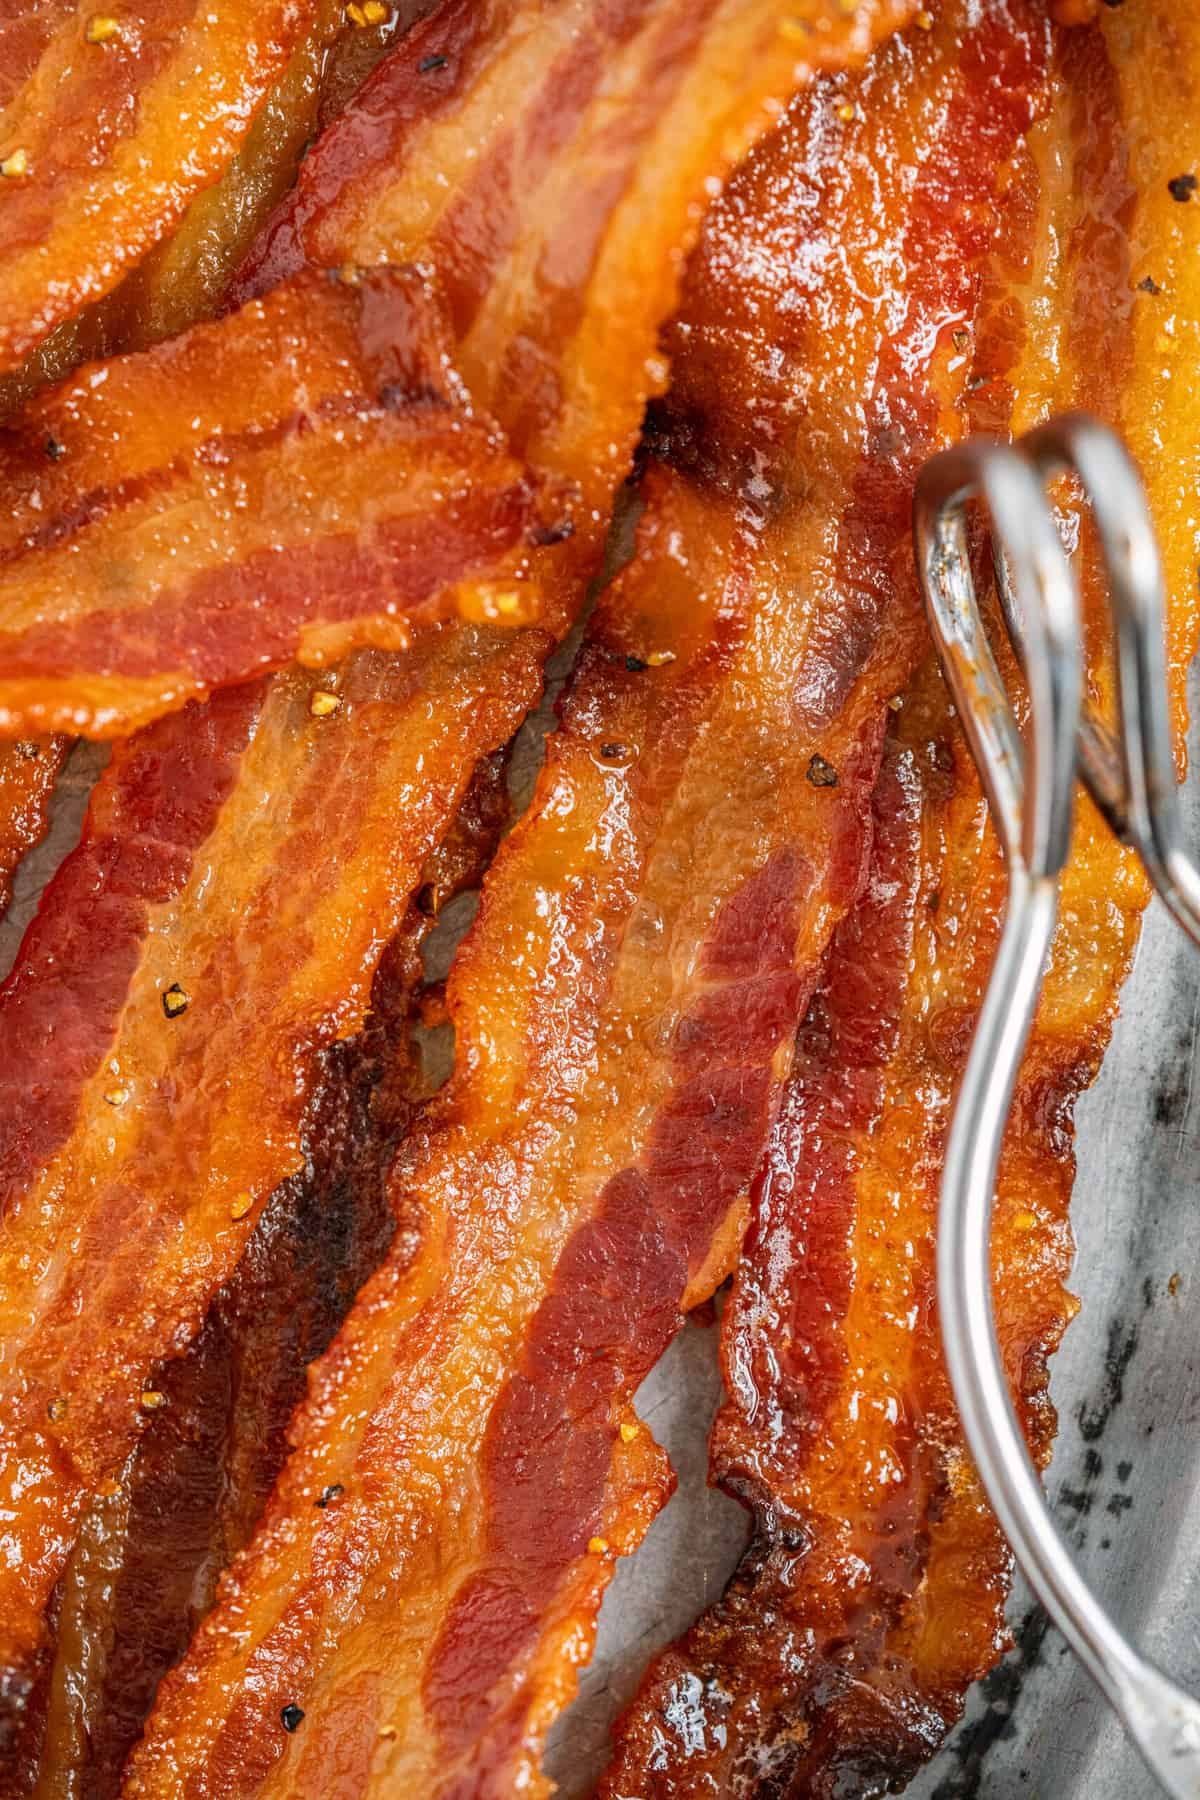 candied bacon lined on a bacon sheet  with tongs